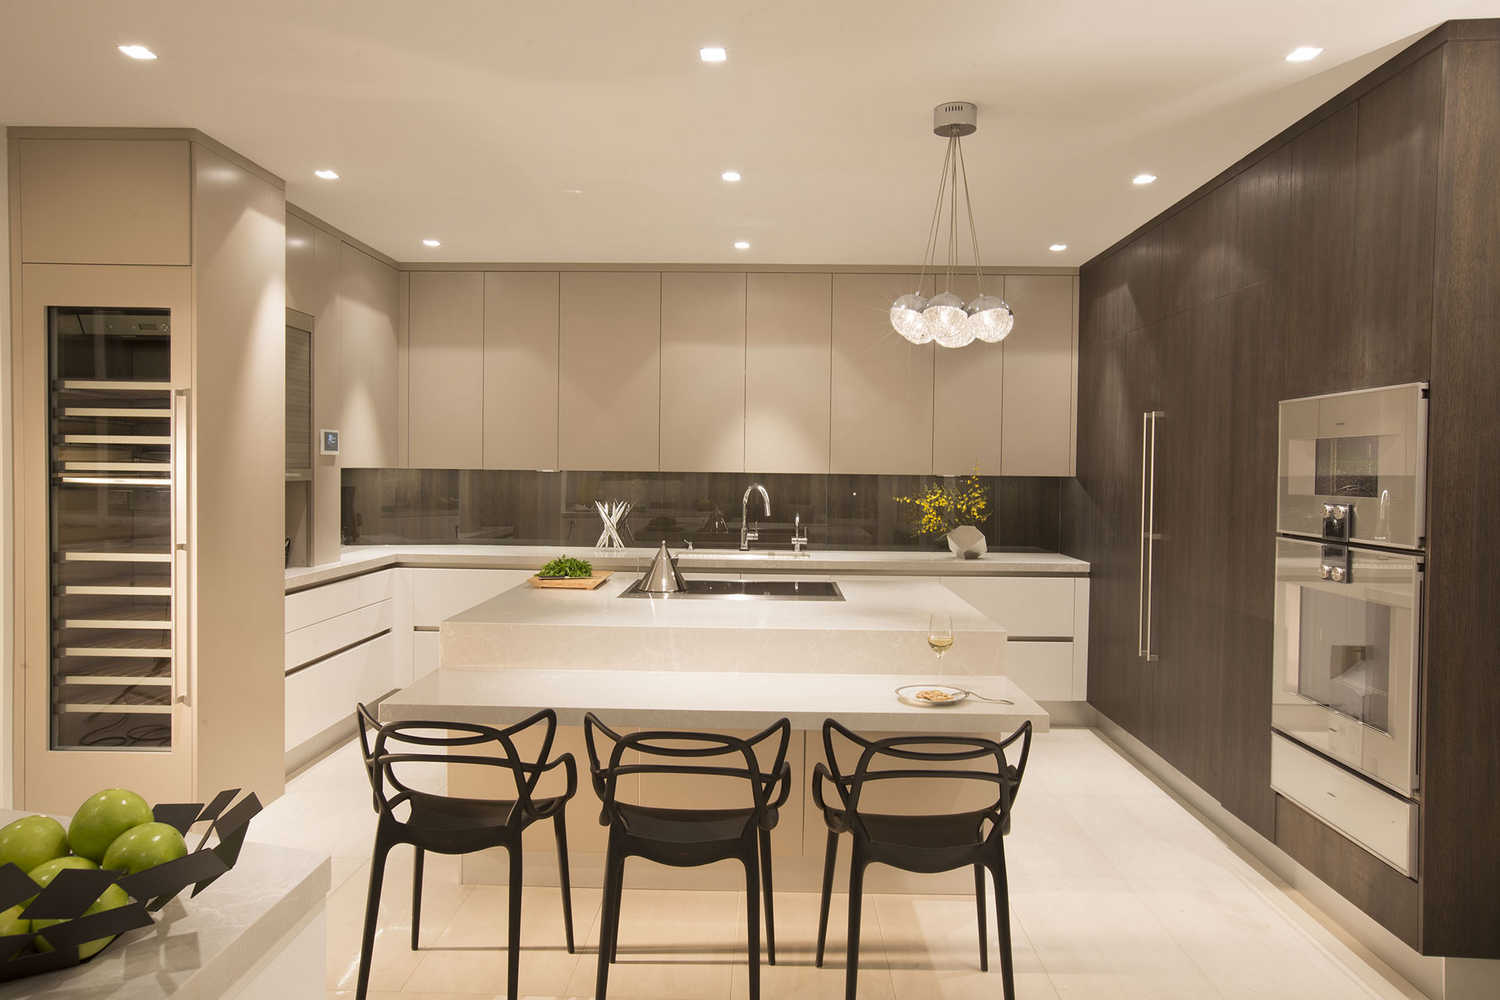 All of these resources can help you design your dream kitchen and answer all of your kitchen design questions